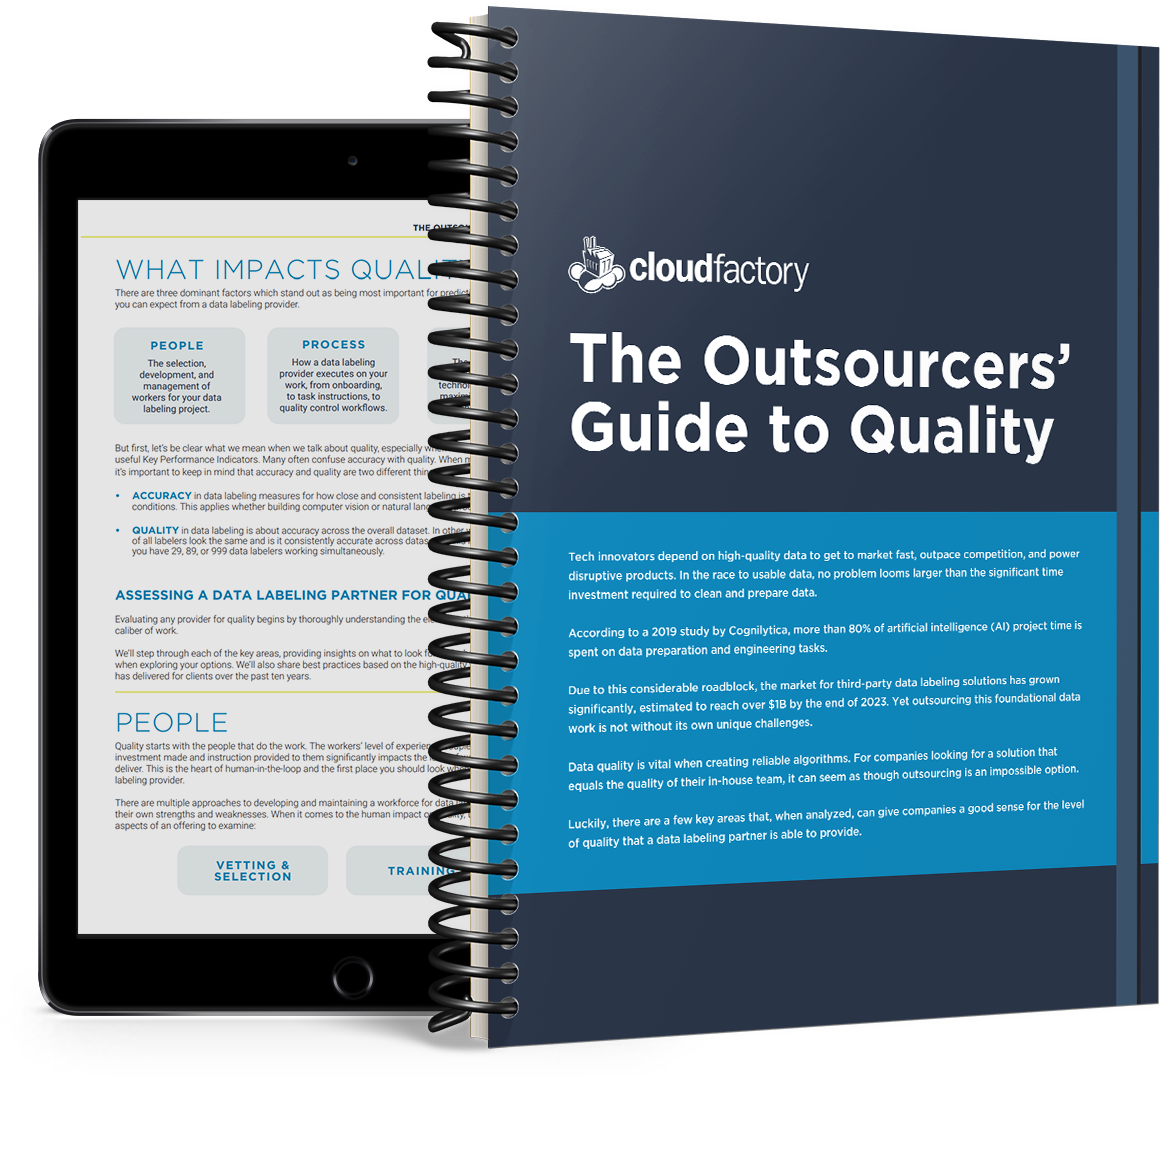 the-outsourcers-guide-to-quality